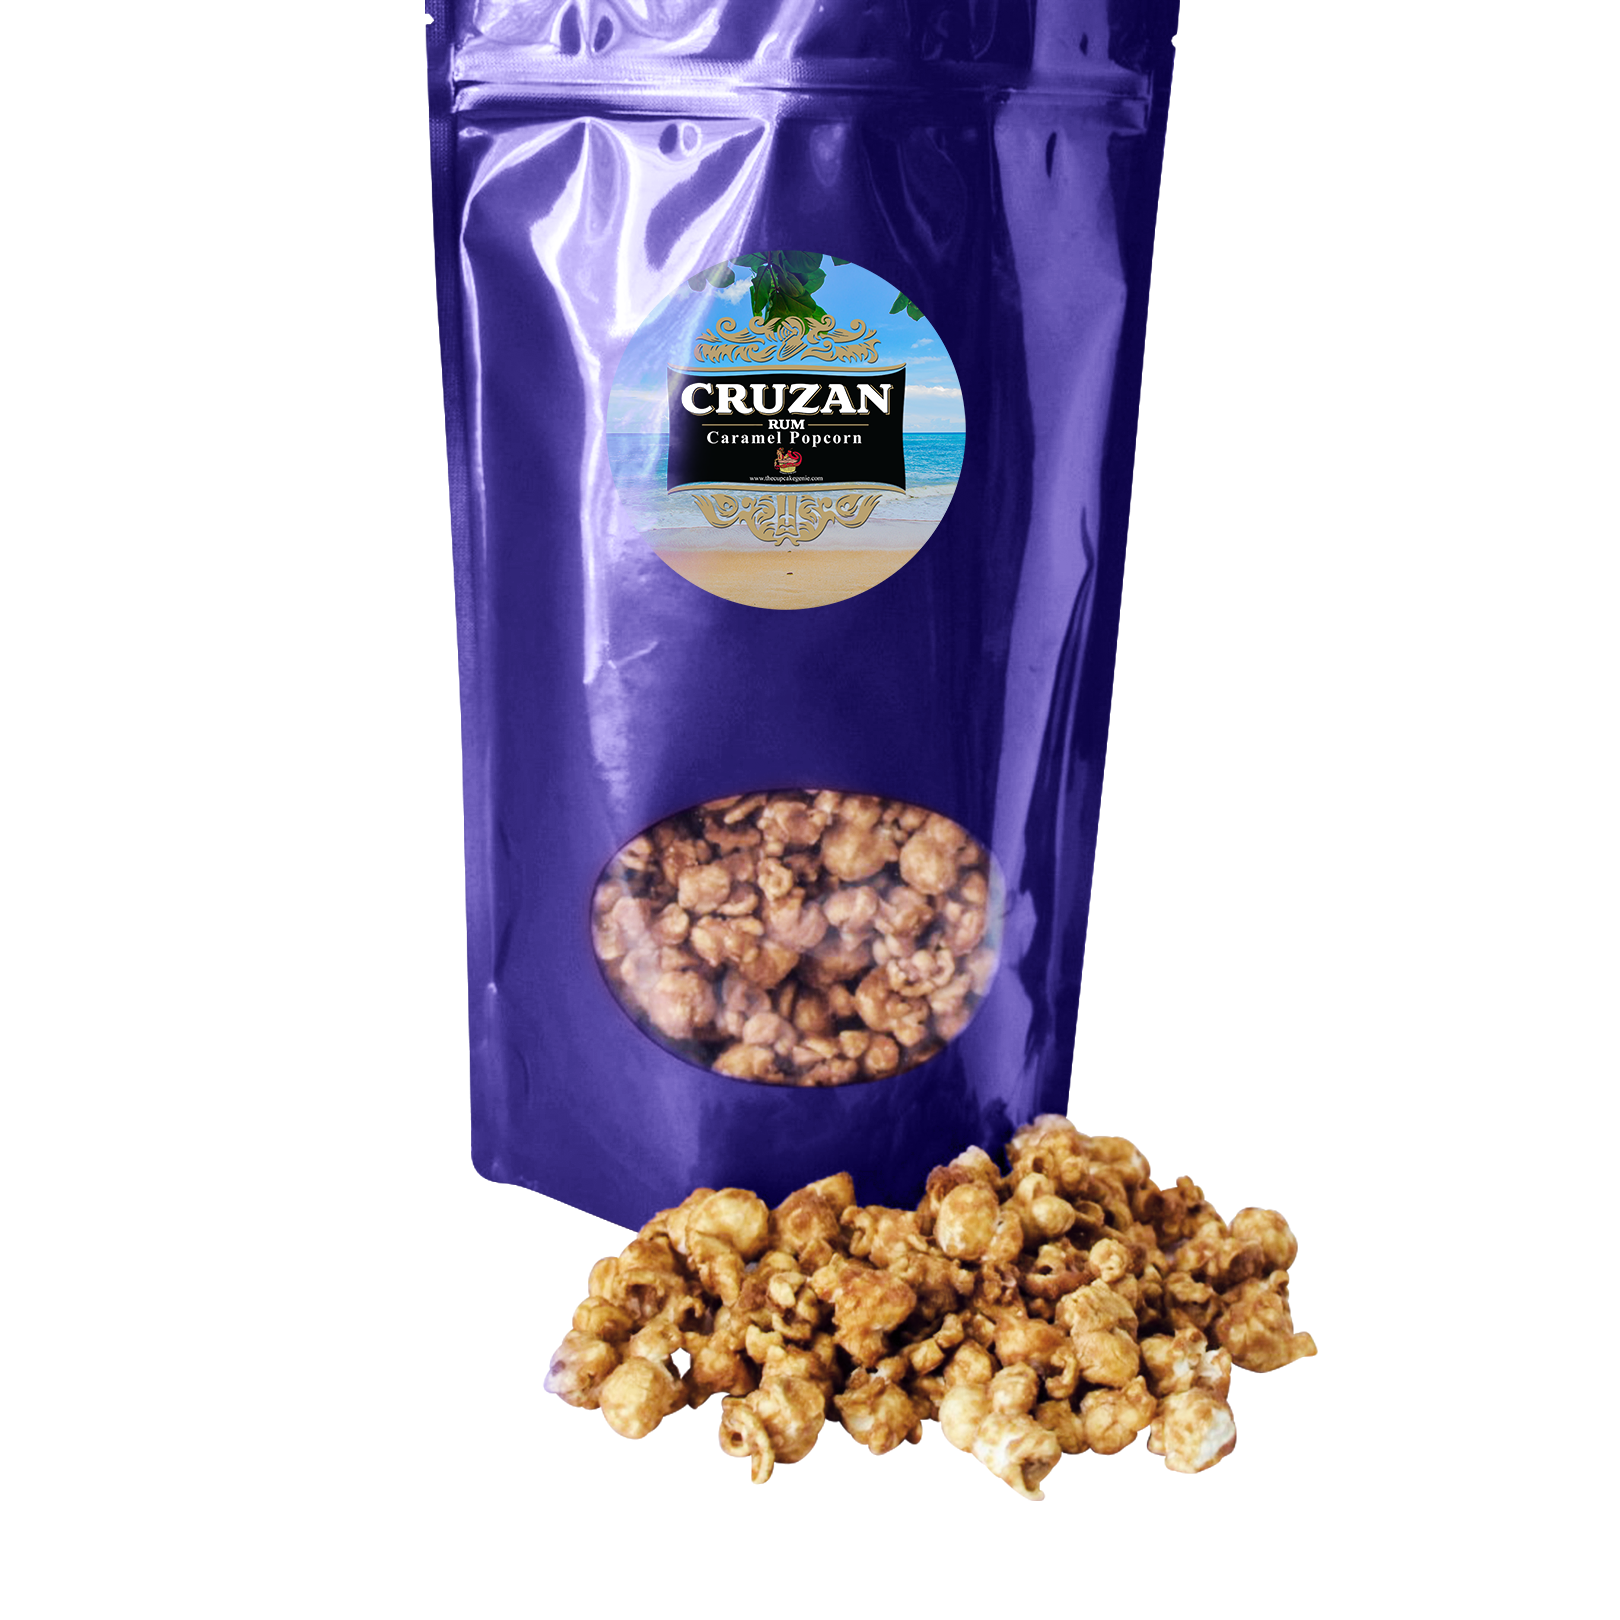 Medium Cruzan Rum Caramel Popcorn (Triple Pack)